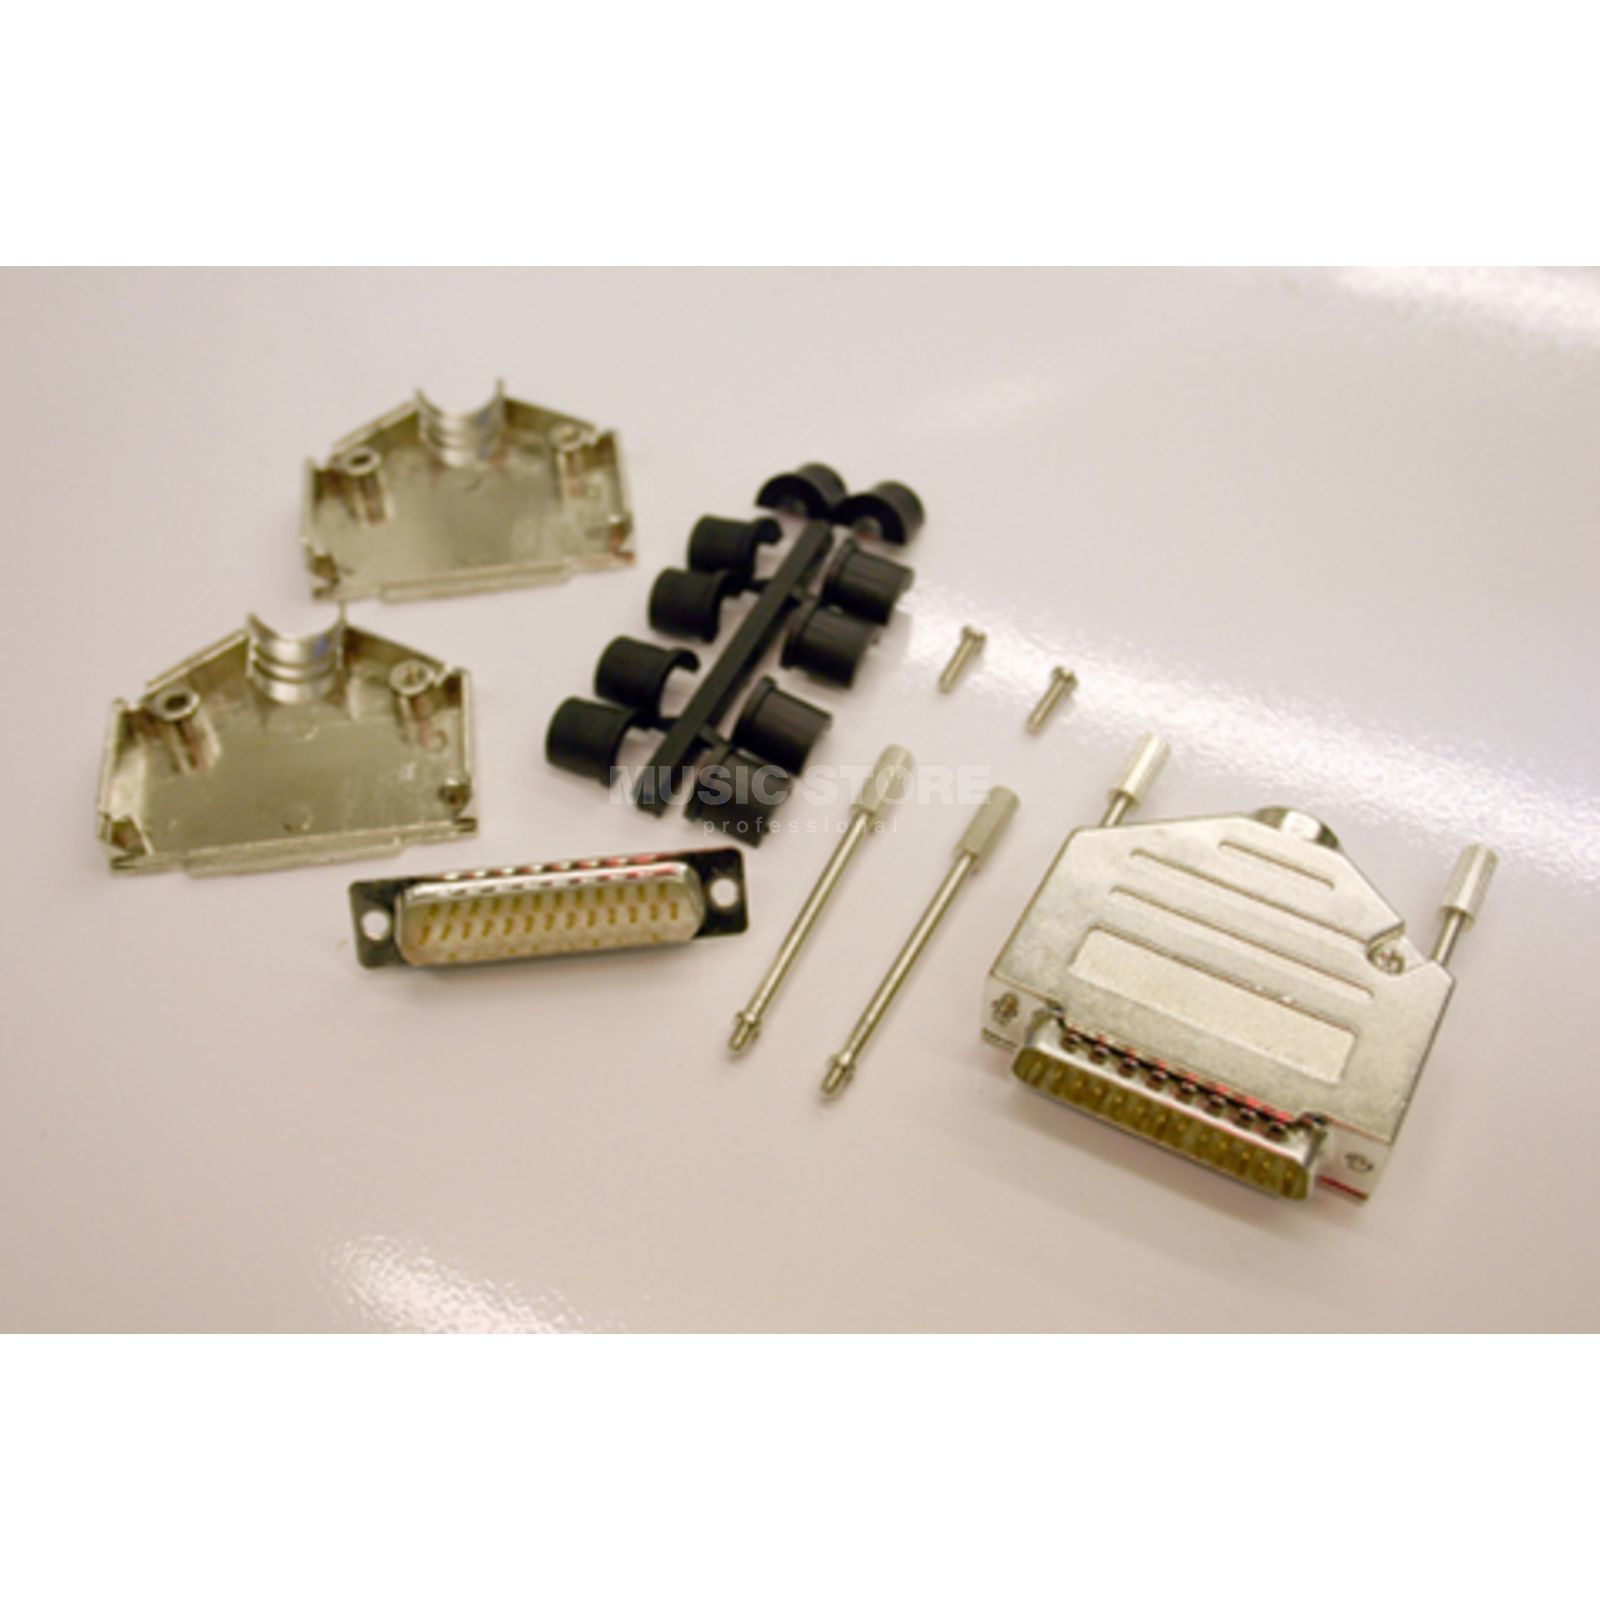 Signex RCK25M Rear Connector Kit Produktbild